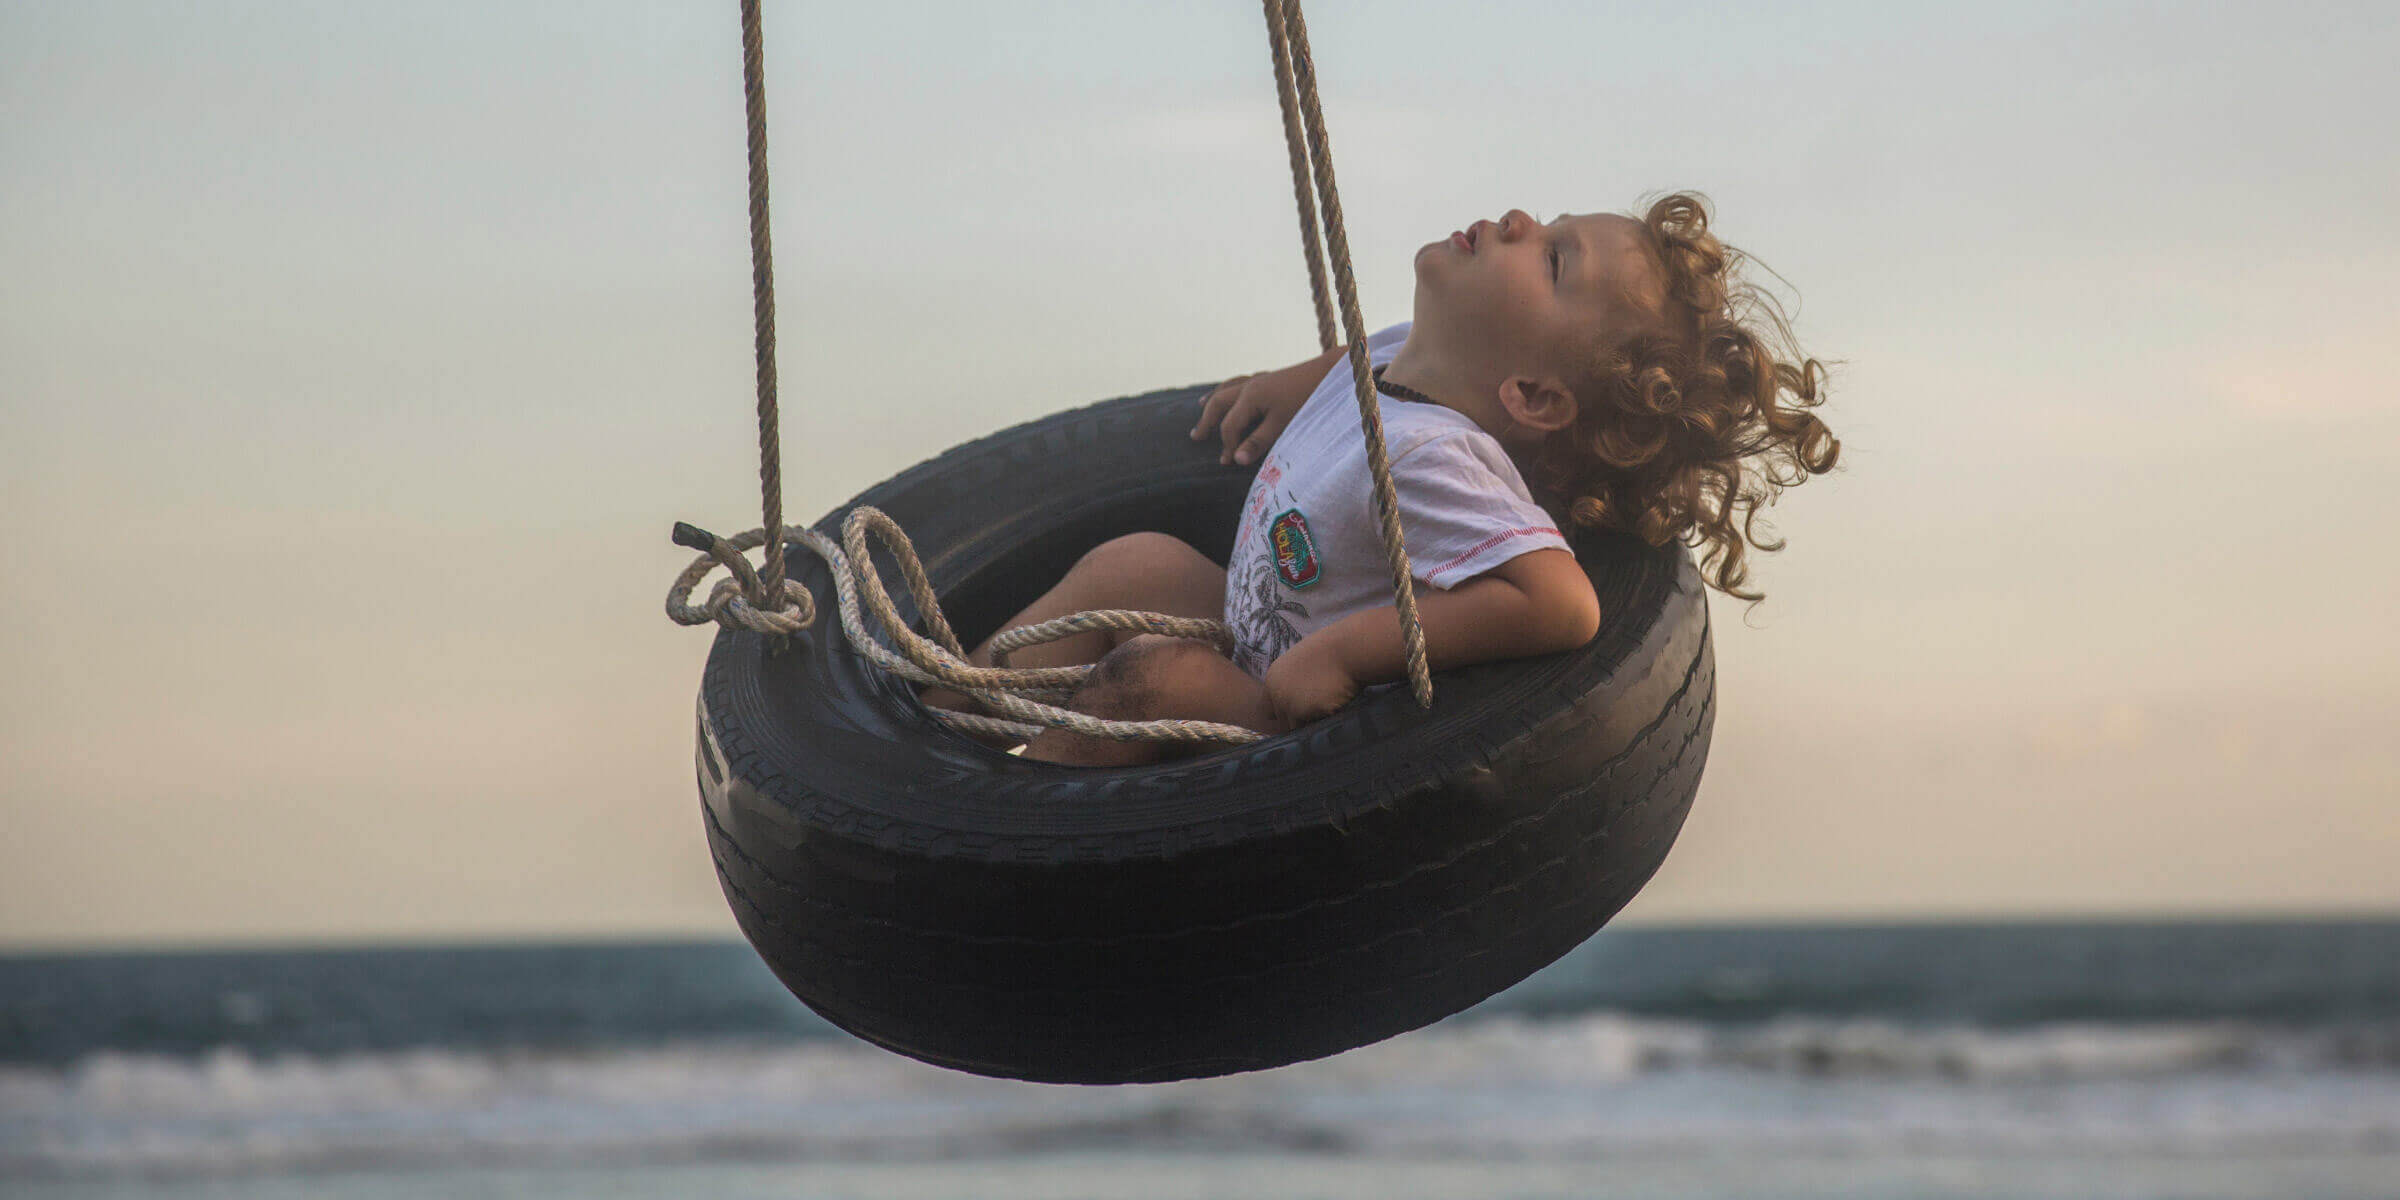 Child on tyre swing at the beach